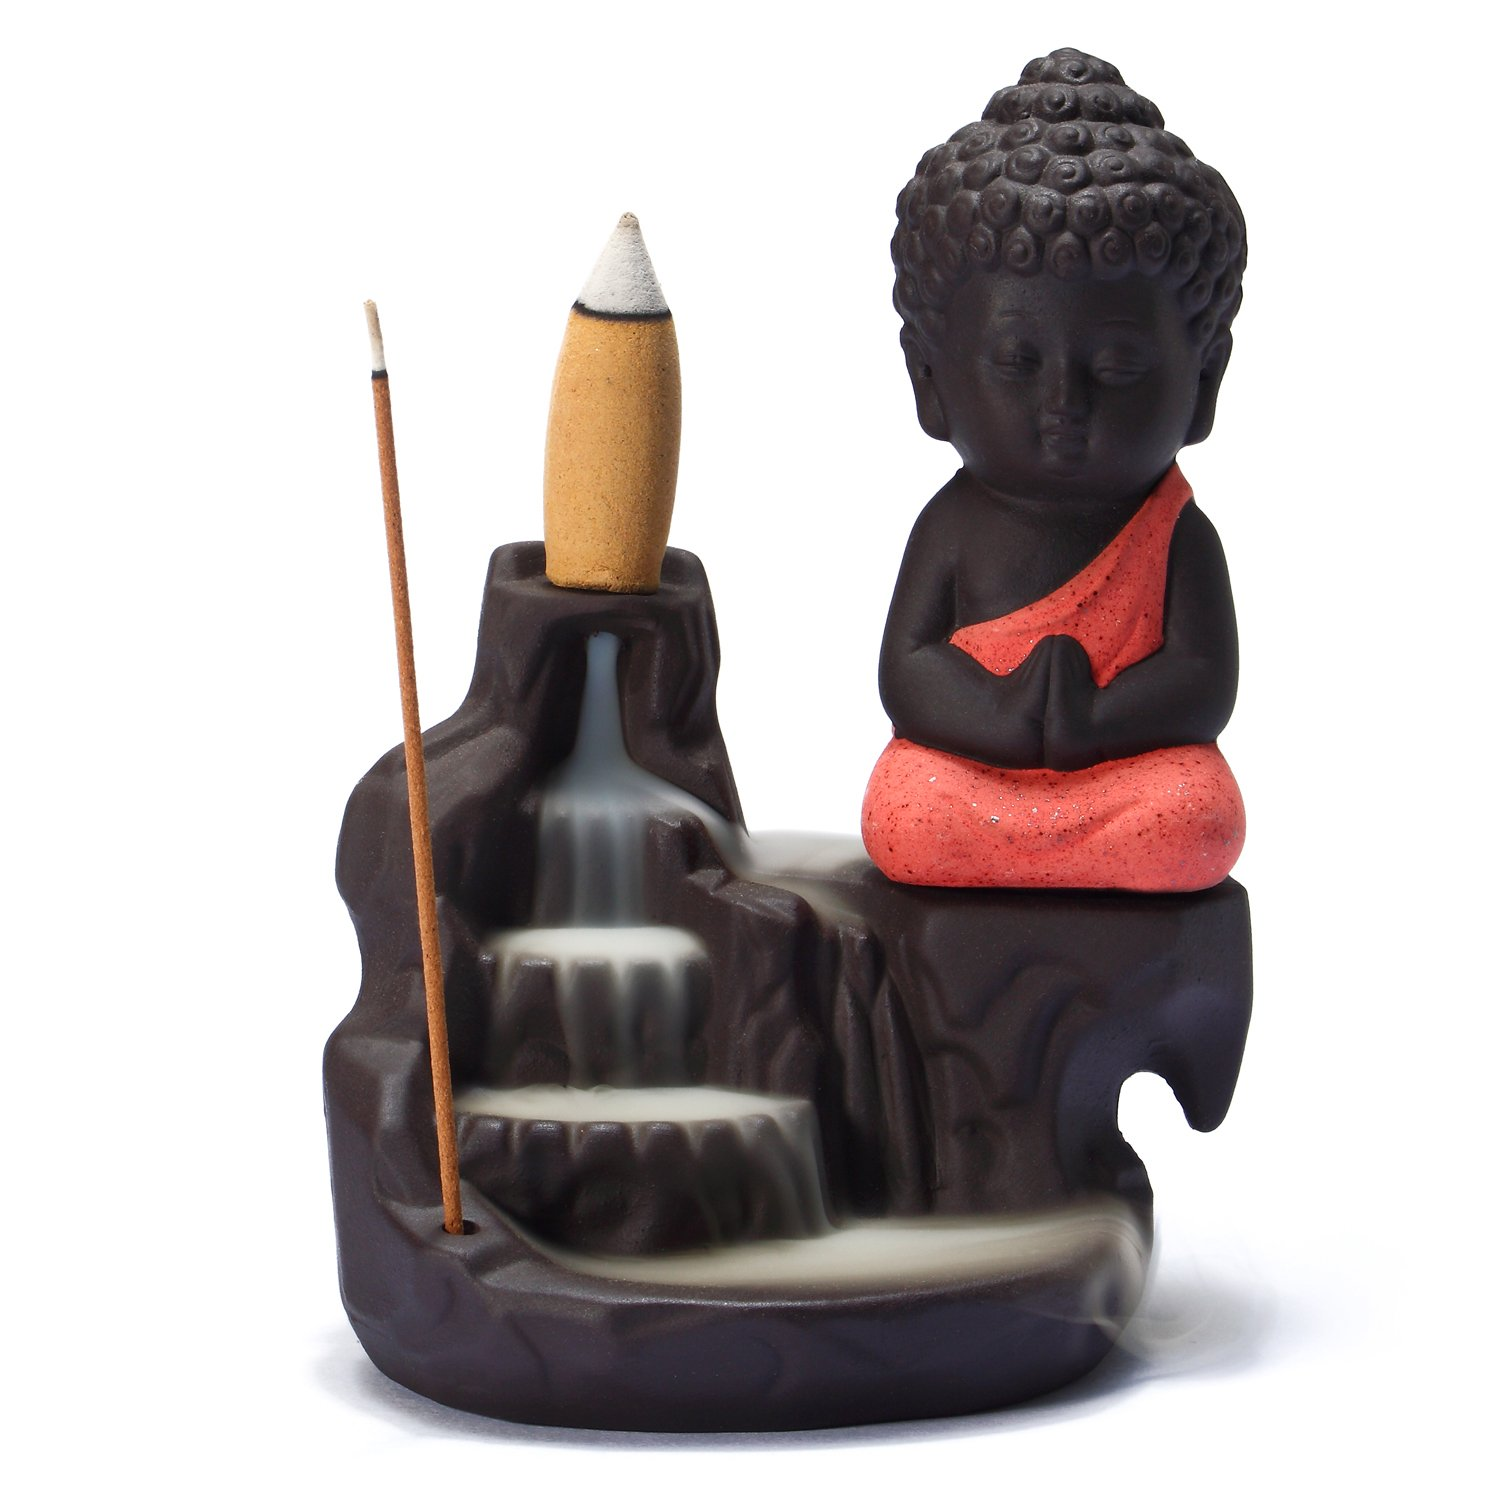 UOON Buddha Incense Burner Backflow, Handmade Ceramic Burner for Cone and Stick Incense with Ash Catcher (RED)